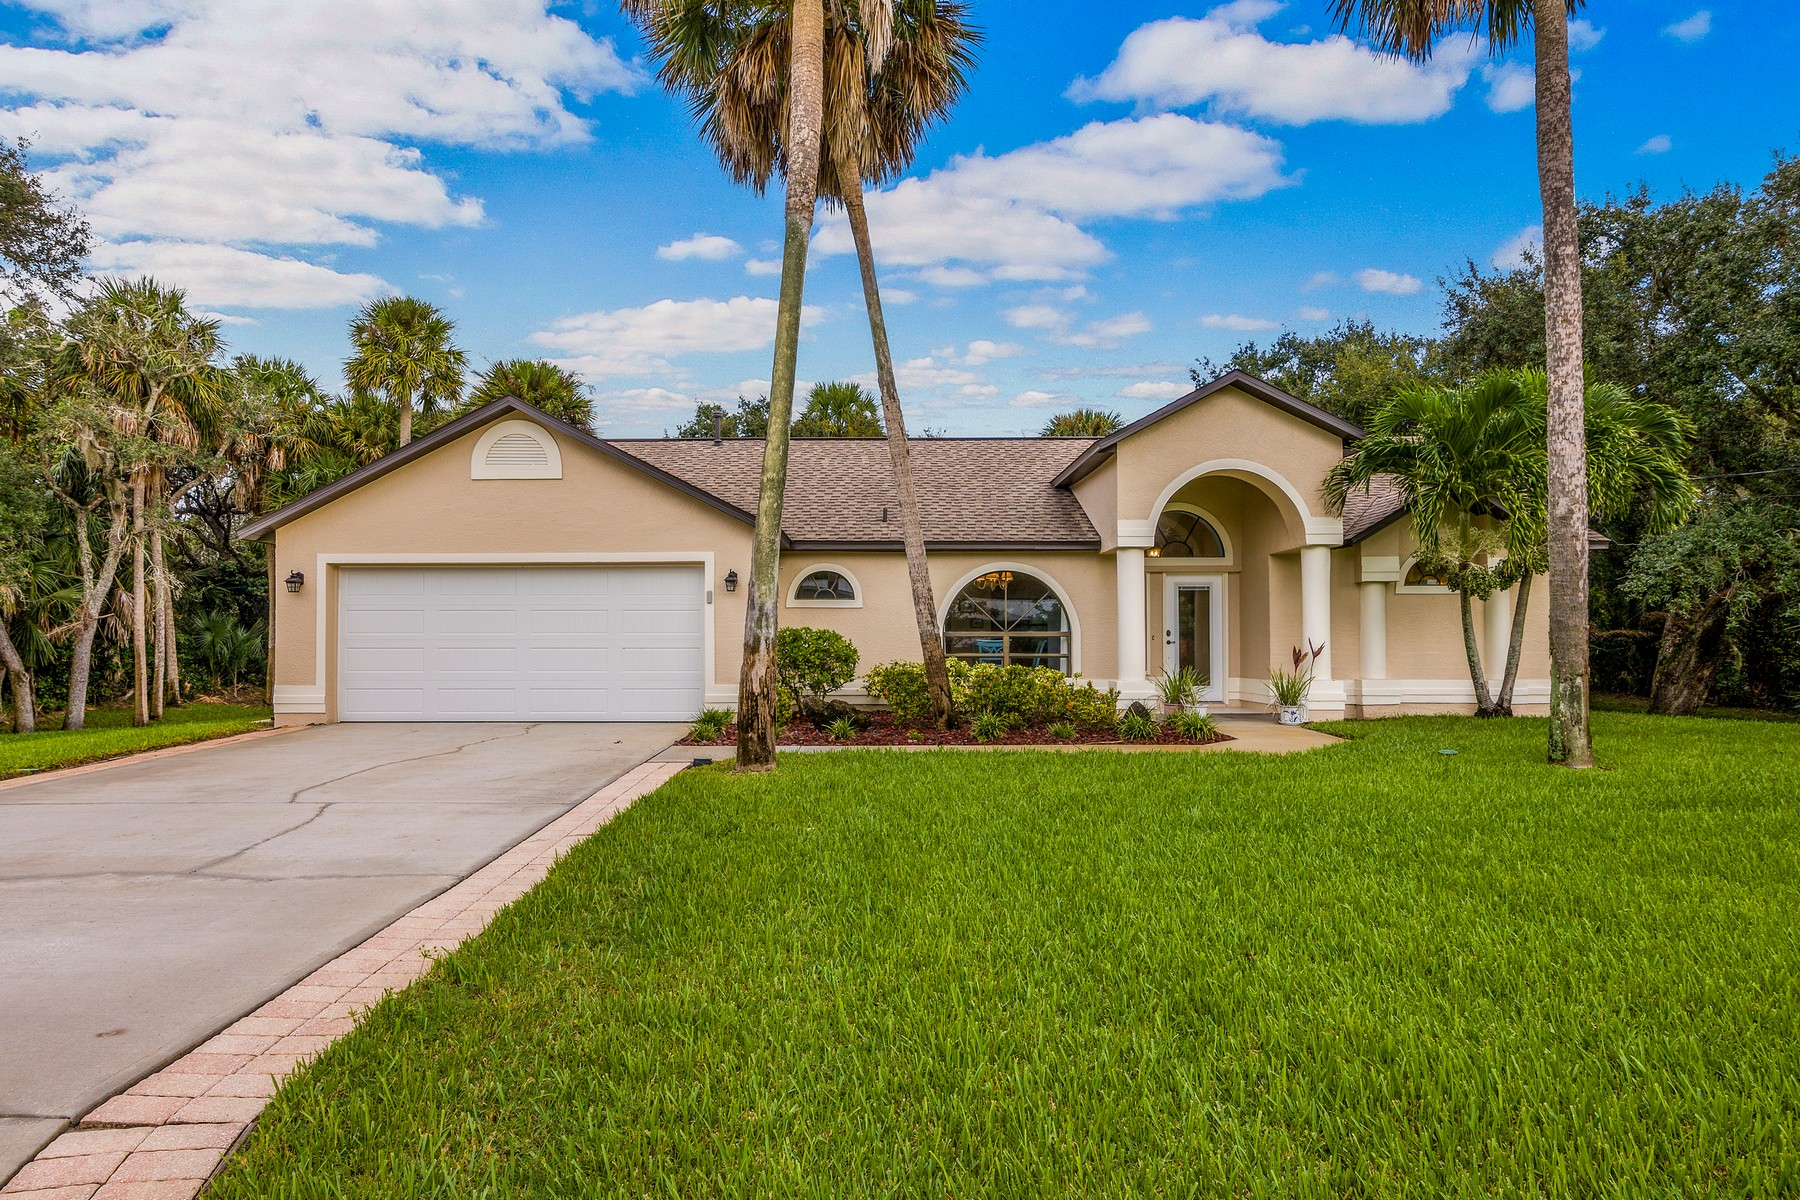 Single Family Homes for Sale at Impeccably Maintained Home Tucked Away in Charming, Coastal Neighborhood 340 Indian Mound Drive Melbourne Beach, Florida 32951 United States